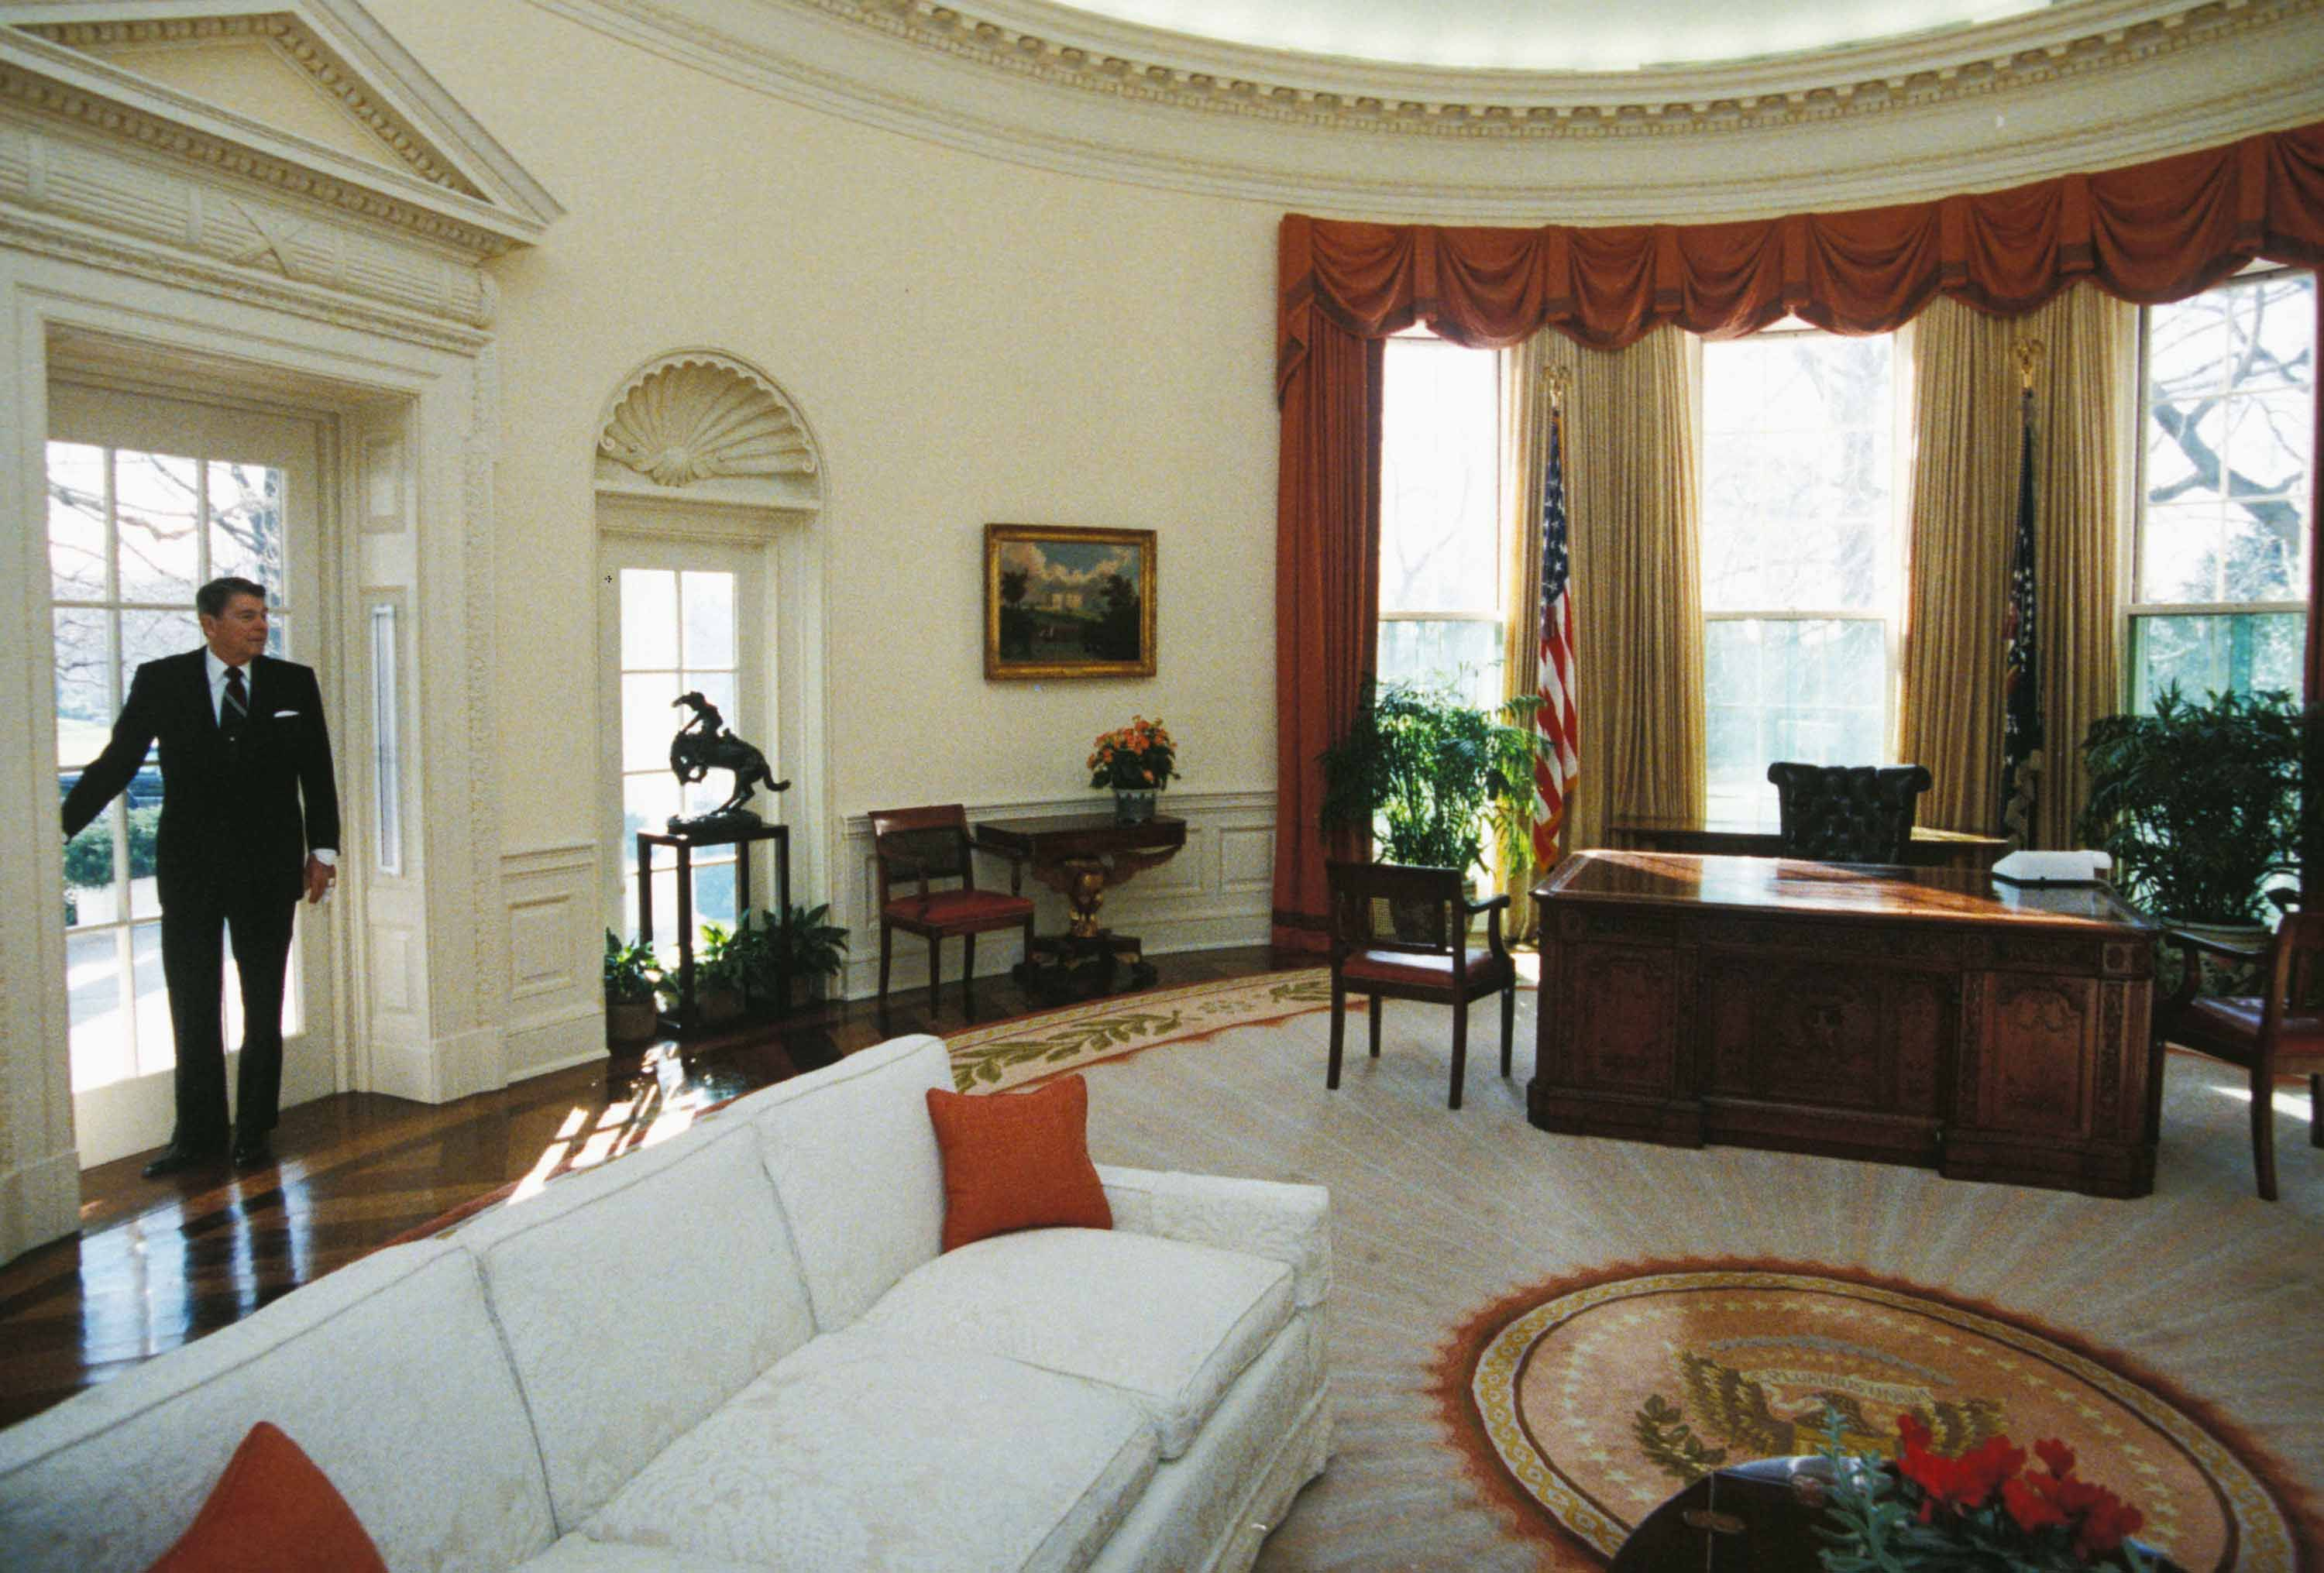 oval office rugs. Oval Office Decor Changes In The Last 50+ Years - Pictures Of From Every Presidency Rugs T